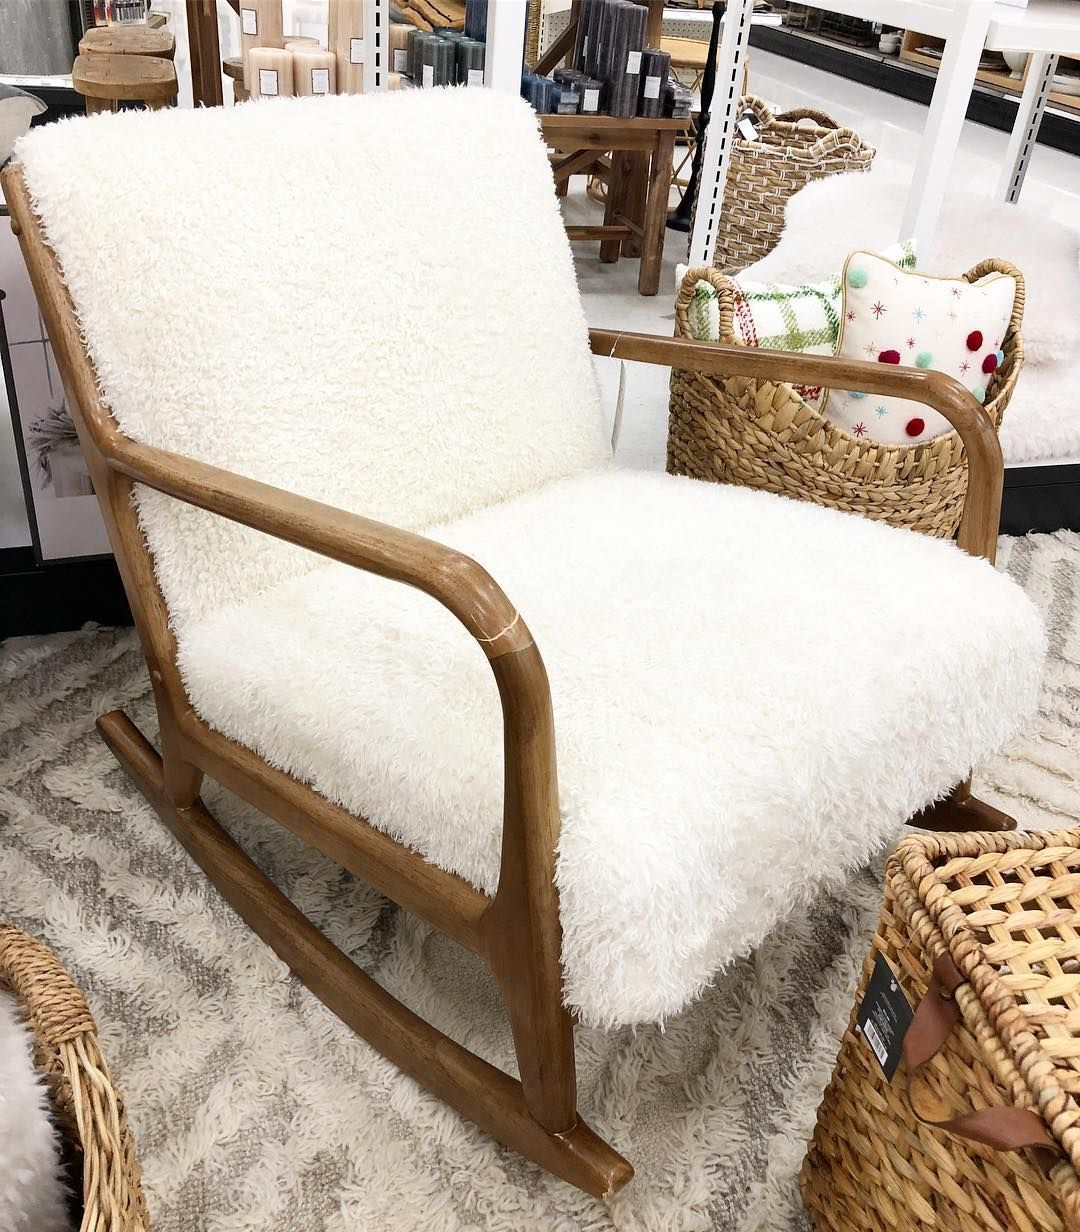 Rocking Chair Living Room Chairs Target Chair Chair Living Room Decor Bedroom Inspo Targetdoesitagain On Instagram This S Rocking Chair Chair Target Chair